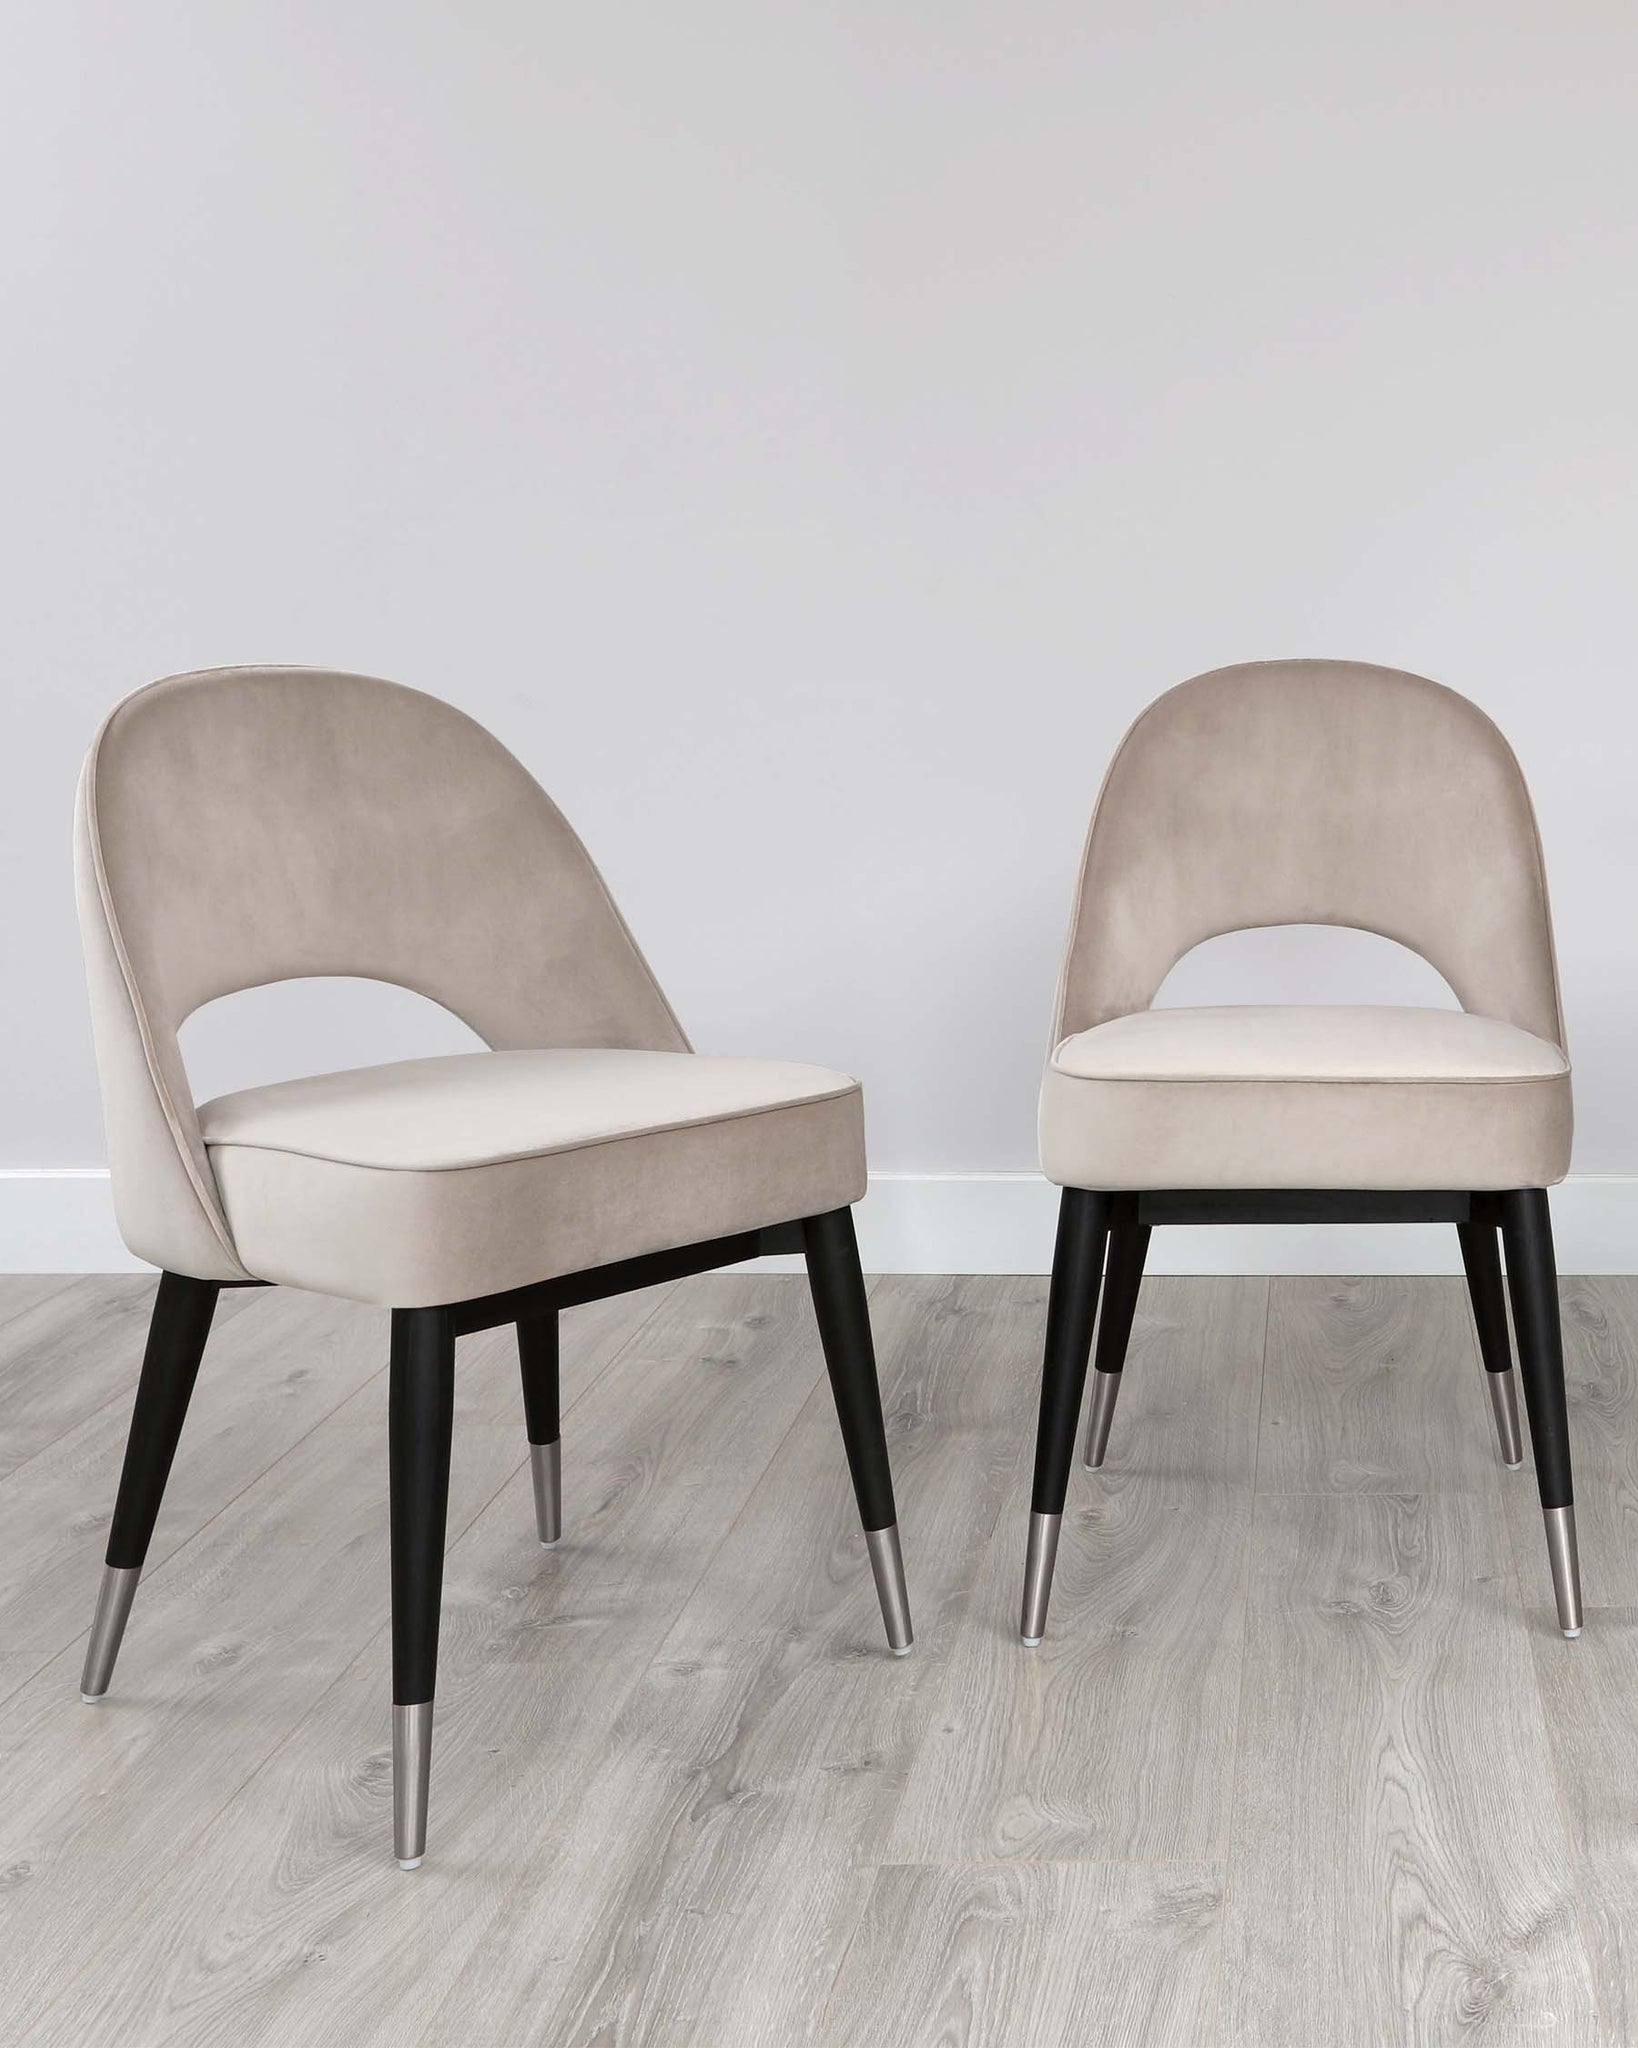 Clover Champagne Velvet Dining Chair With Stainless Steel Caps - Set Of 2